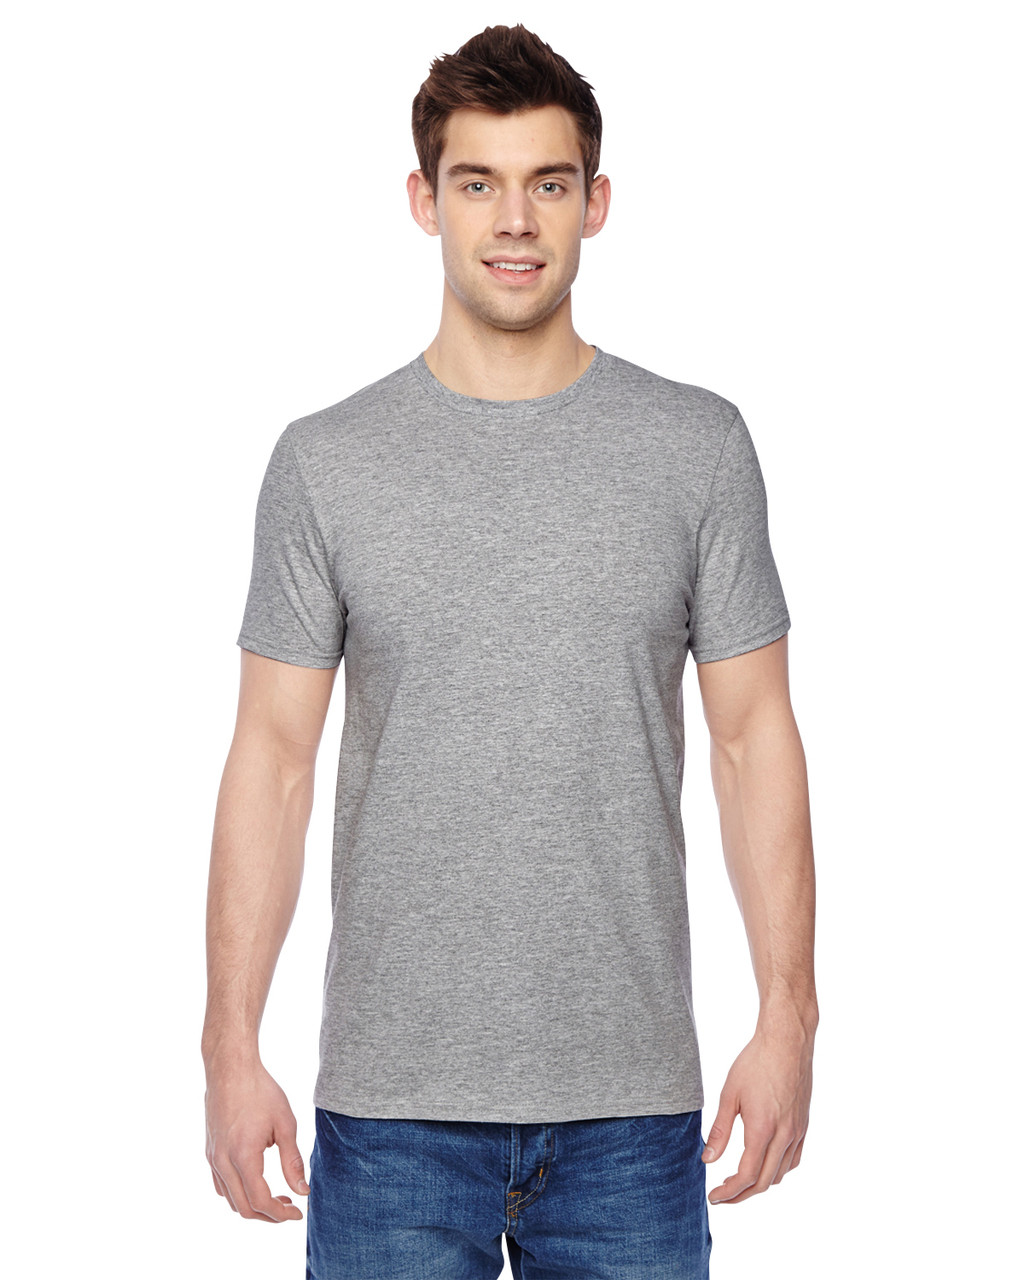 Athletic Heather SF45R Fruit of the Loom SoftSpun Cotton T-Shirt